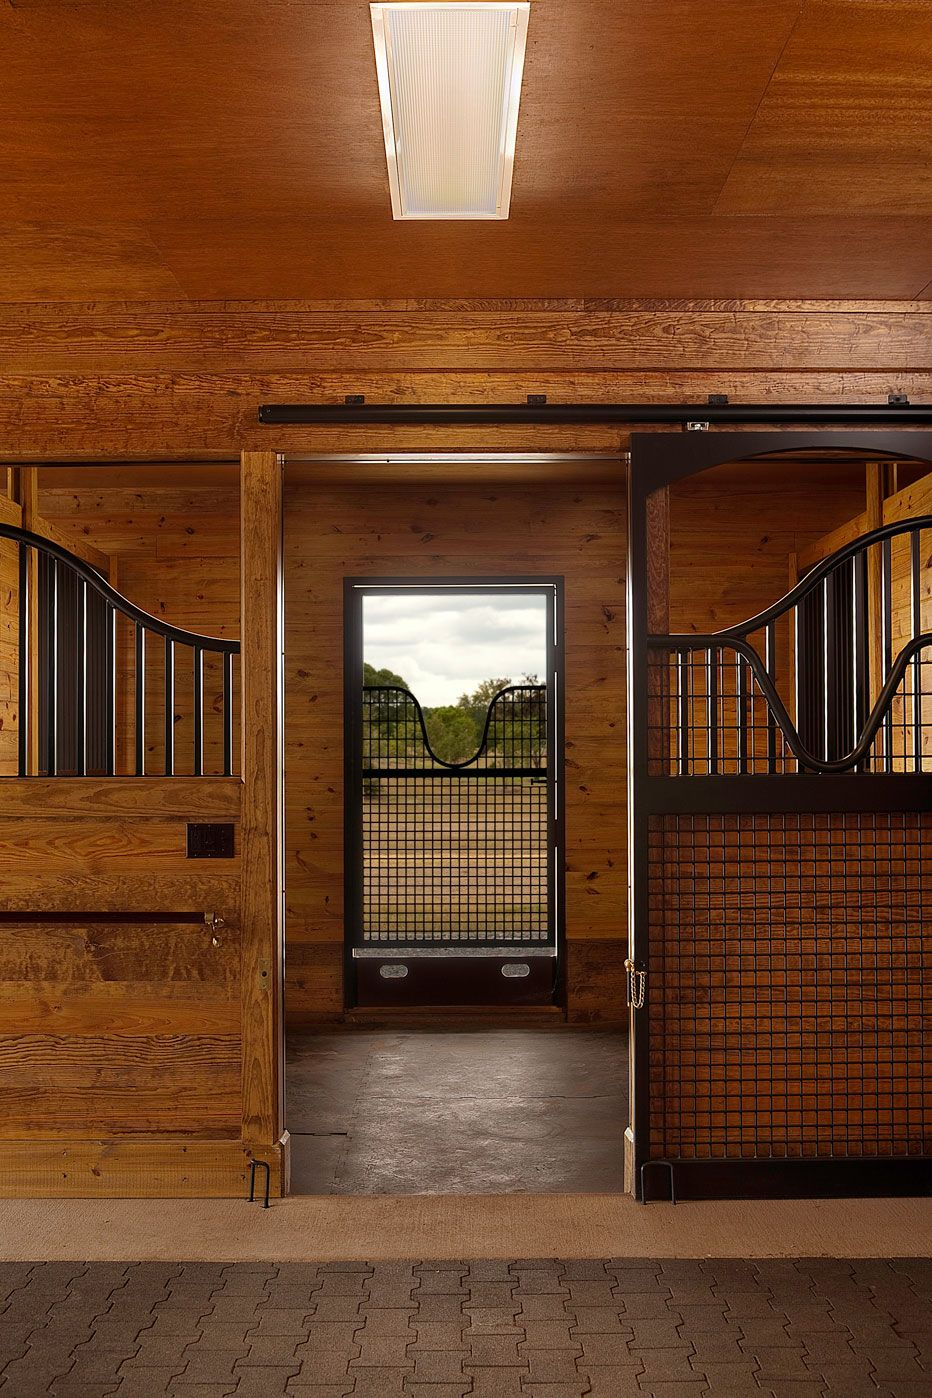 Horse Stall Design Ideas now heres an idea horse barn plans with living quarters 5 stalls 3 Rubber Brick Floor In Stable By Tommy Beach Earth Design Rubber Brick Is Barn Stallshorse